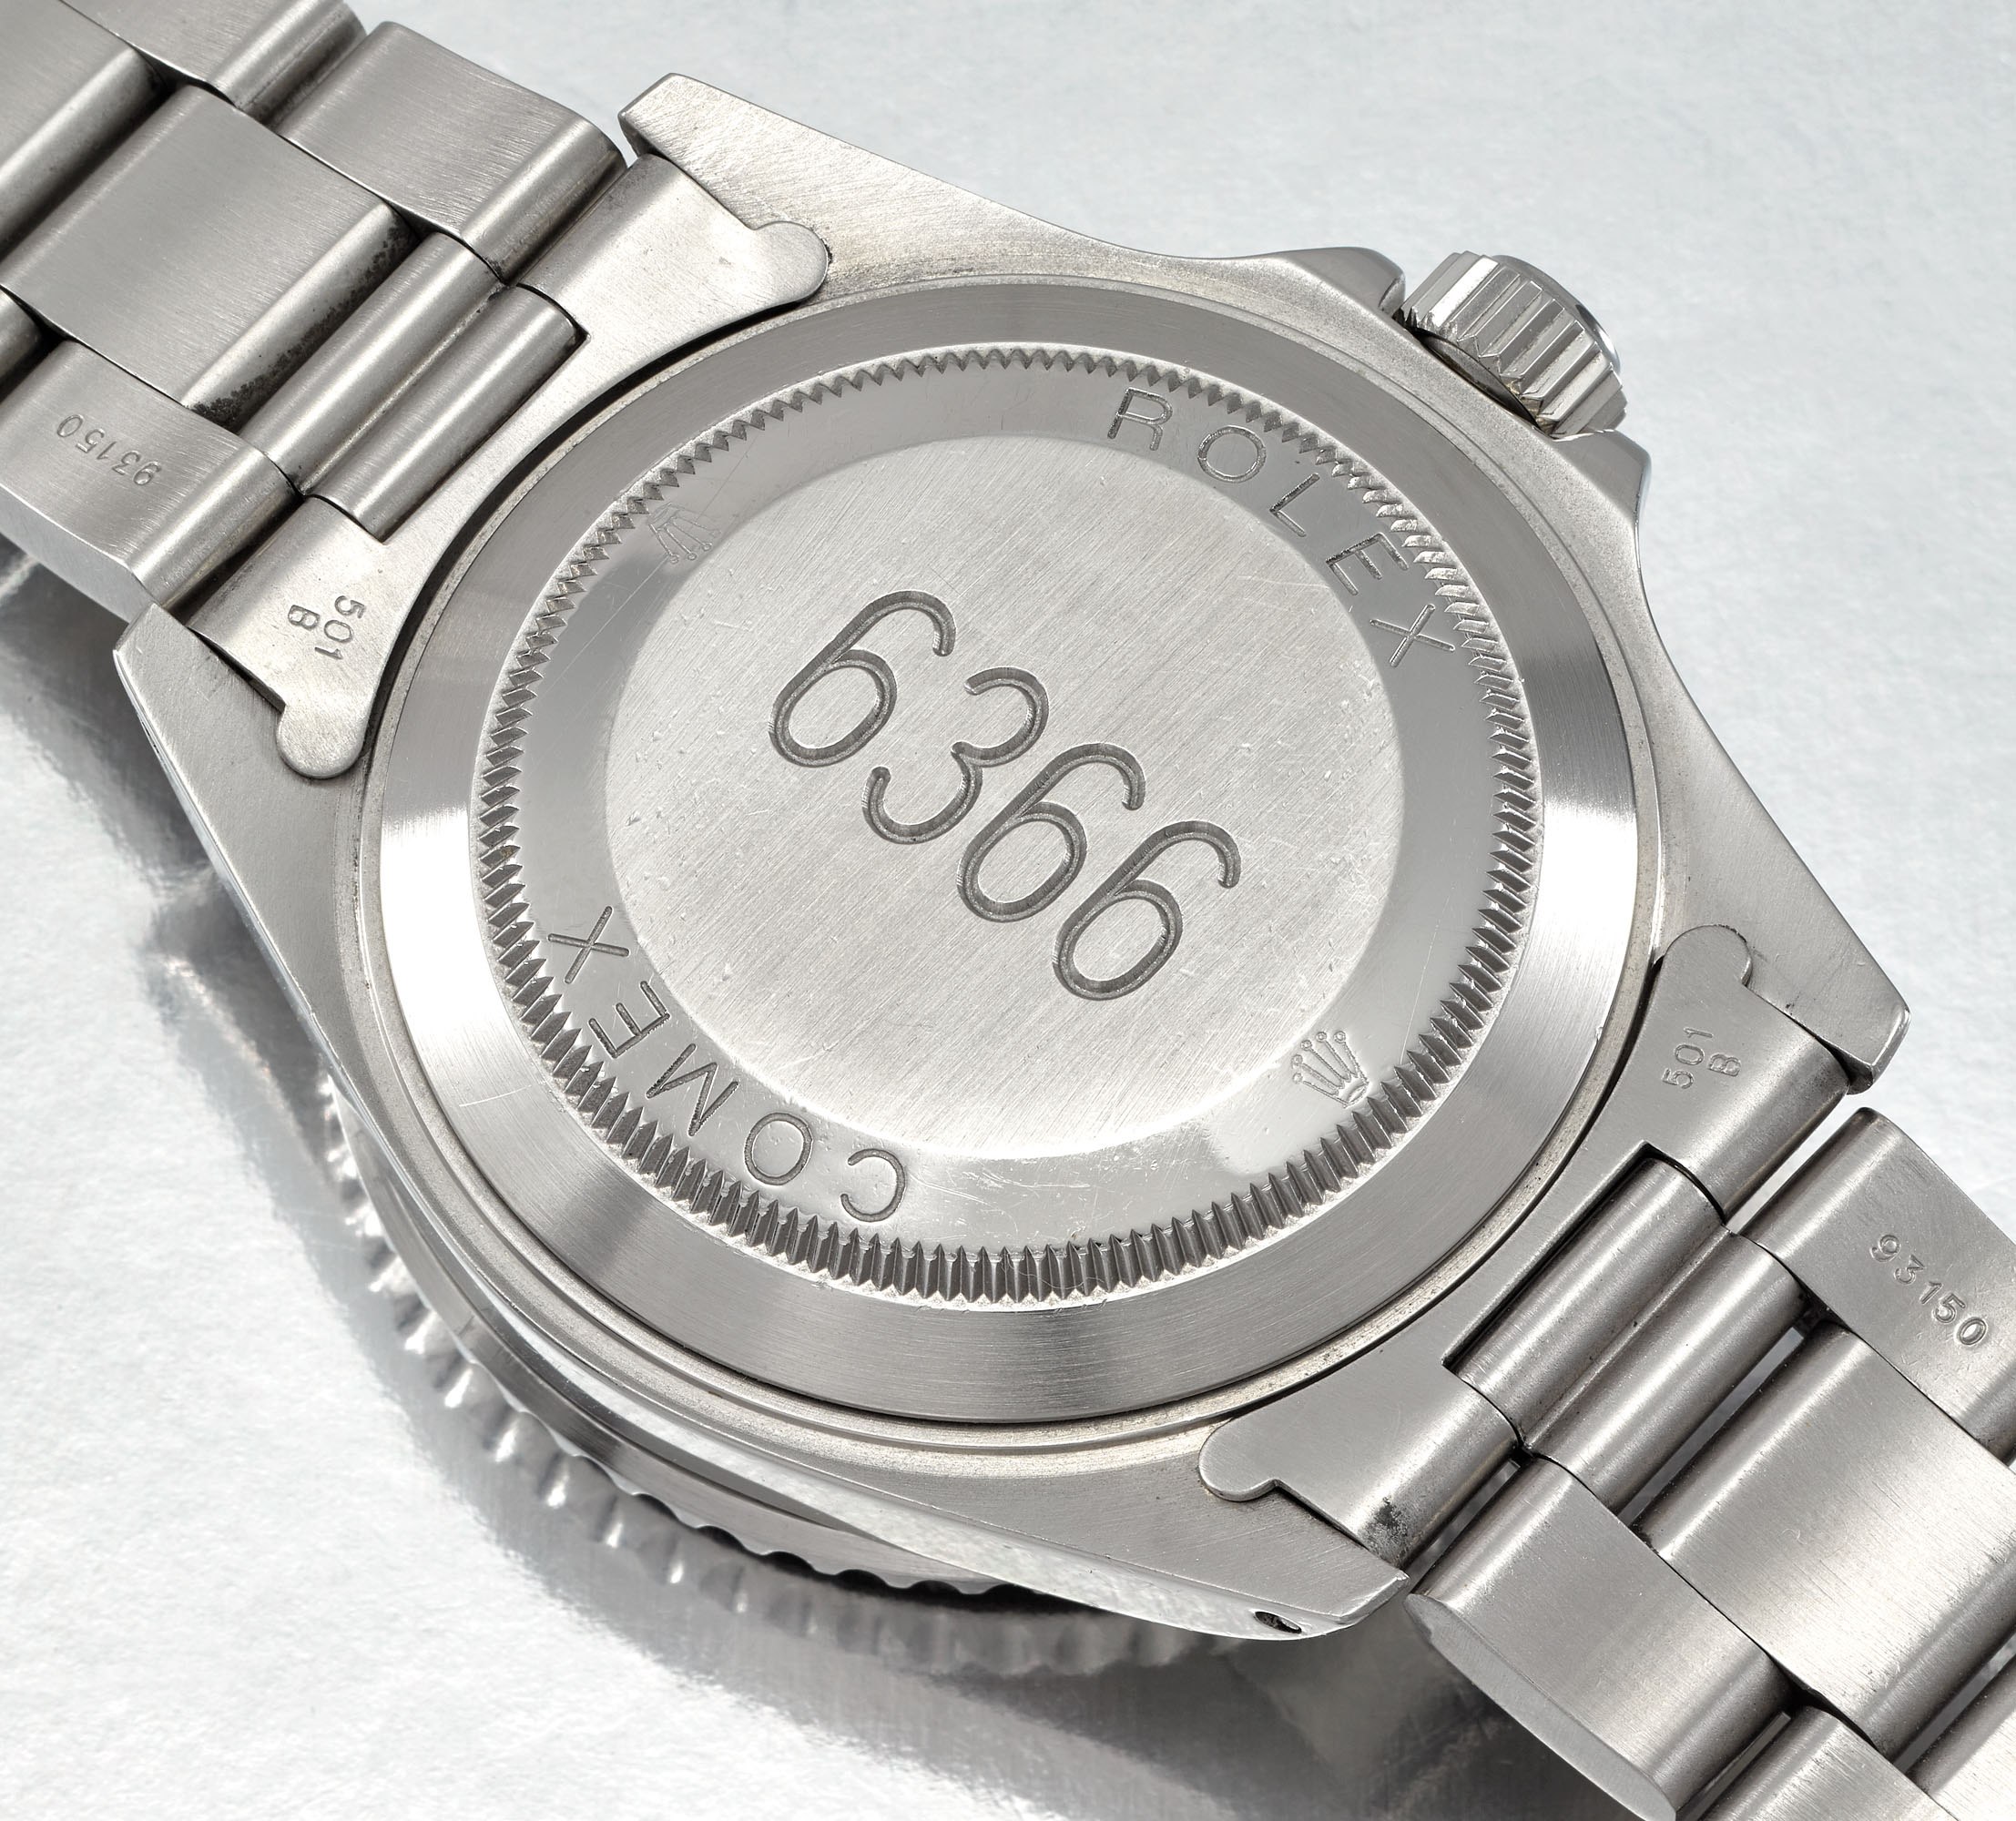 ROLEX. A VERY RARE STAINLESS STEEL AUTOMATIC WRISTWATCH WITH SWEEP CENTRE SECONDS, DATE AND BRACELET, MADE FOR COMEX